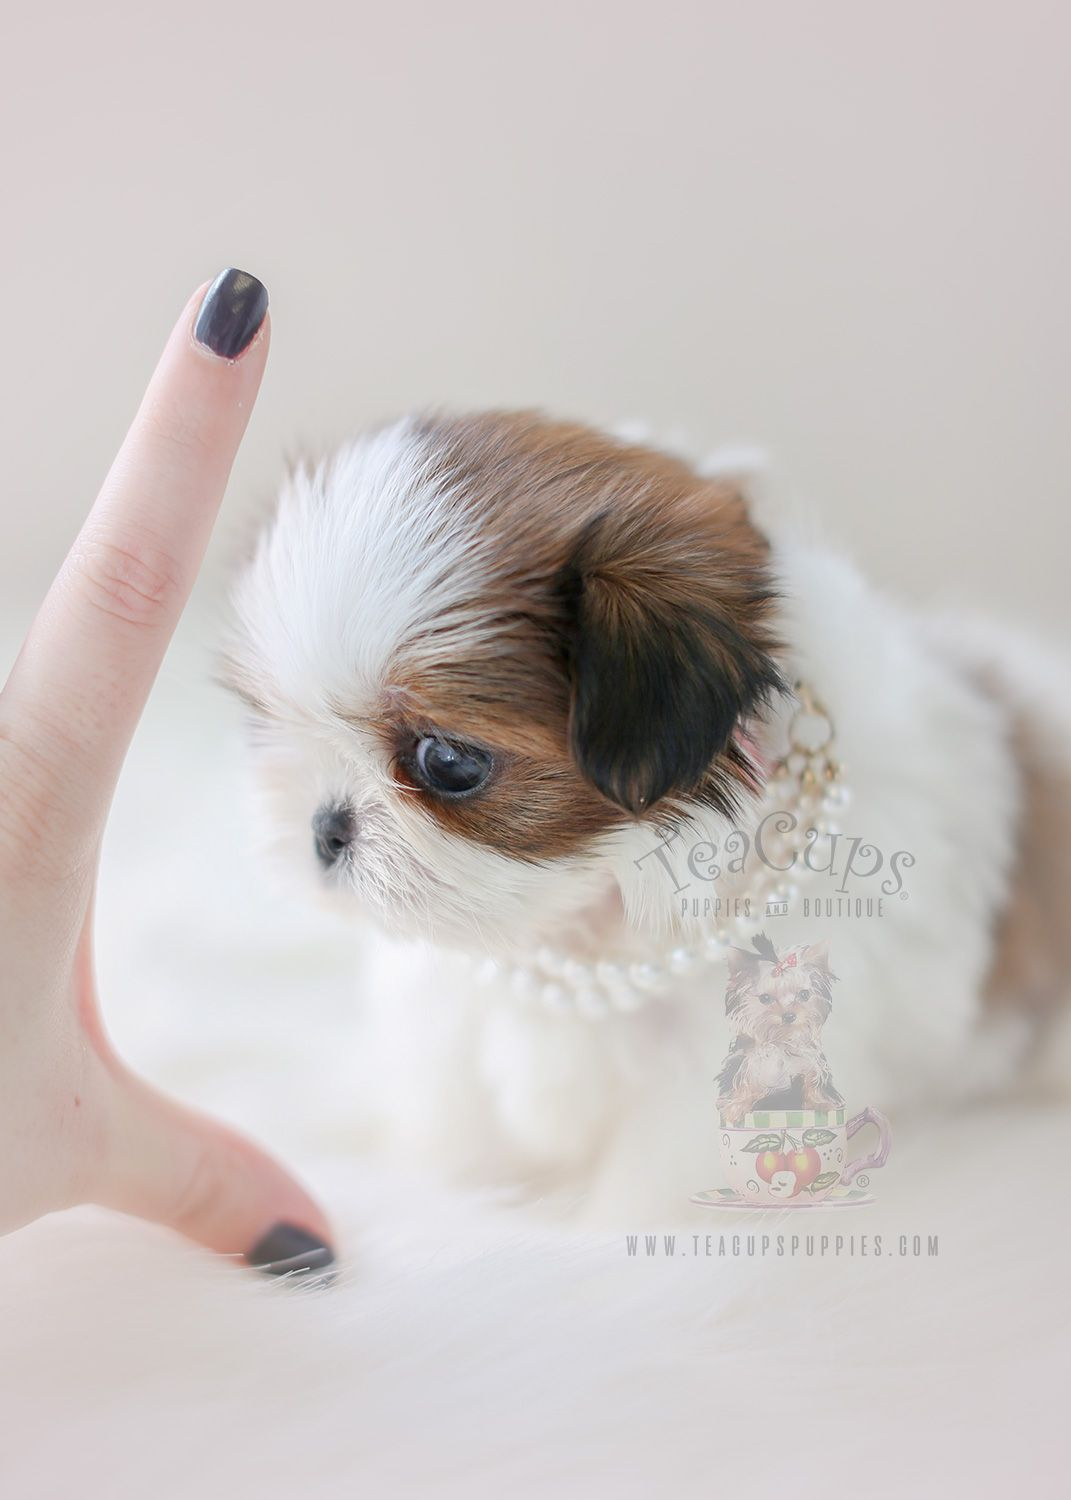 Teenie Tiny Shih Tzu Puppy By Teacup Puppies Boutique Shihtzu